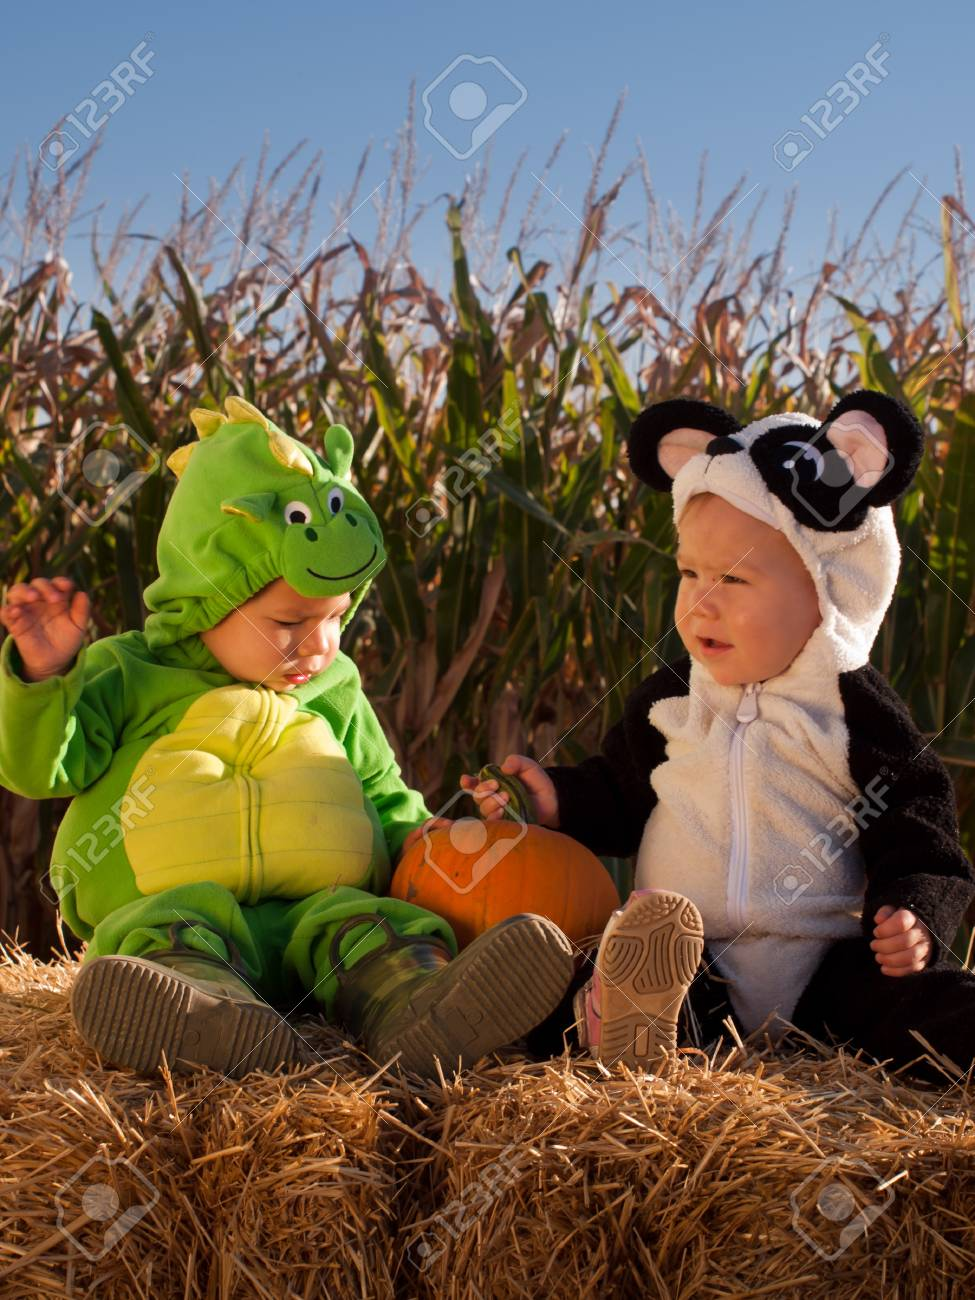 Toddlers dressed up in cute costumes at the pumpkin patch. Stock Photo - 10806944